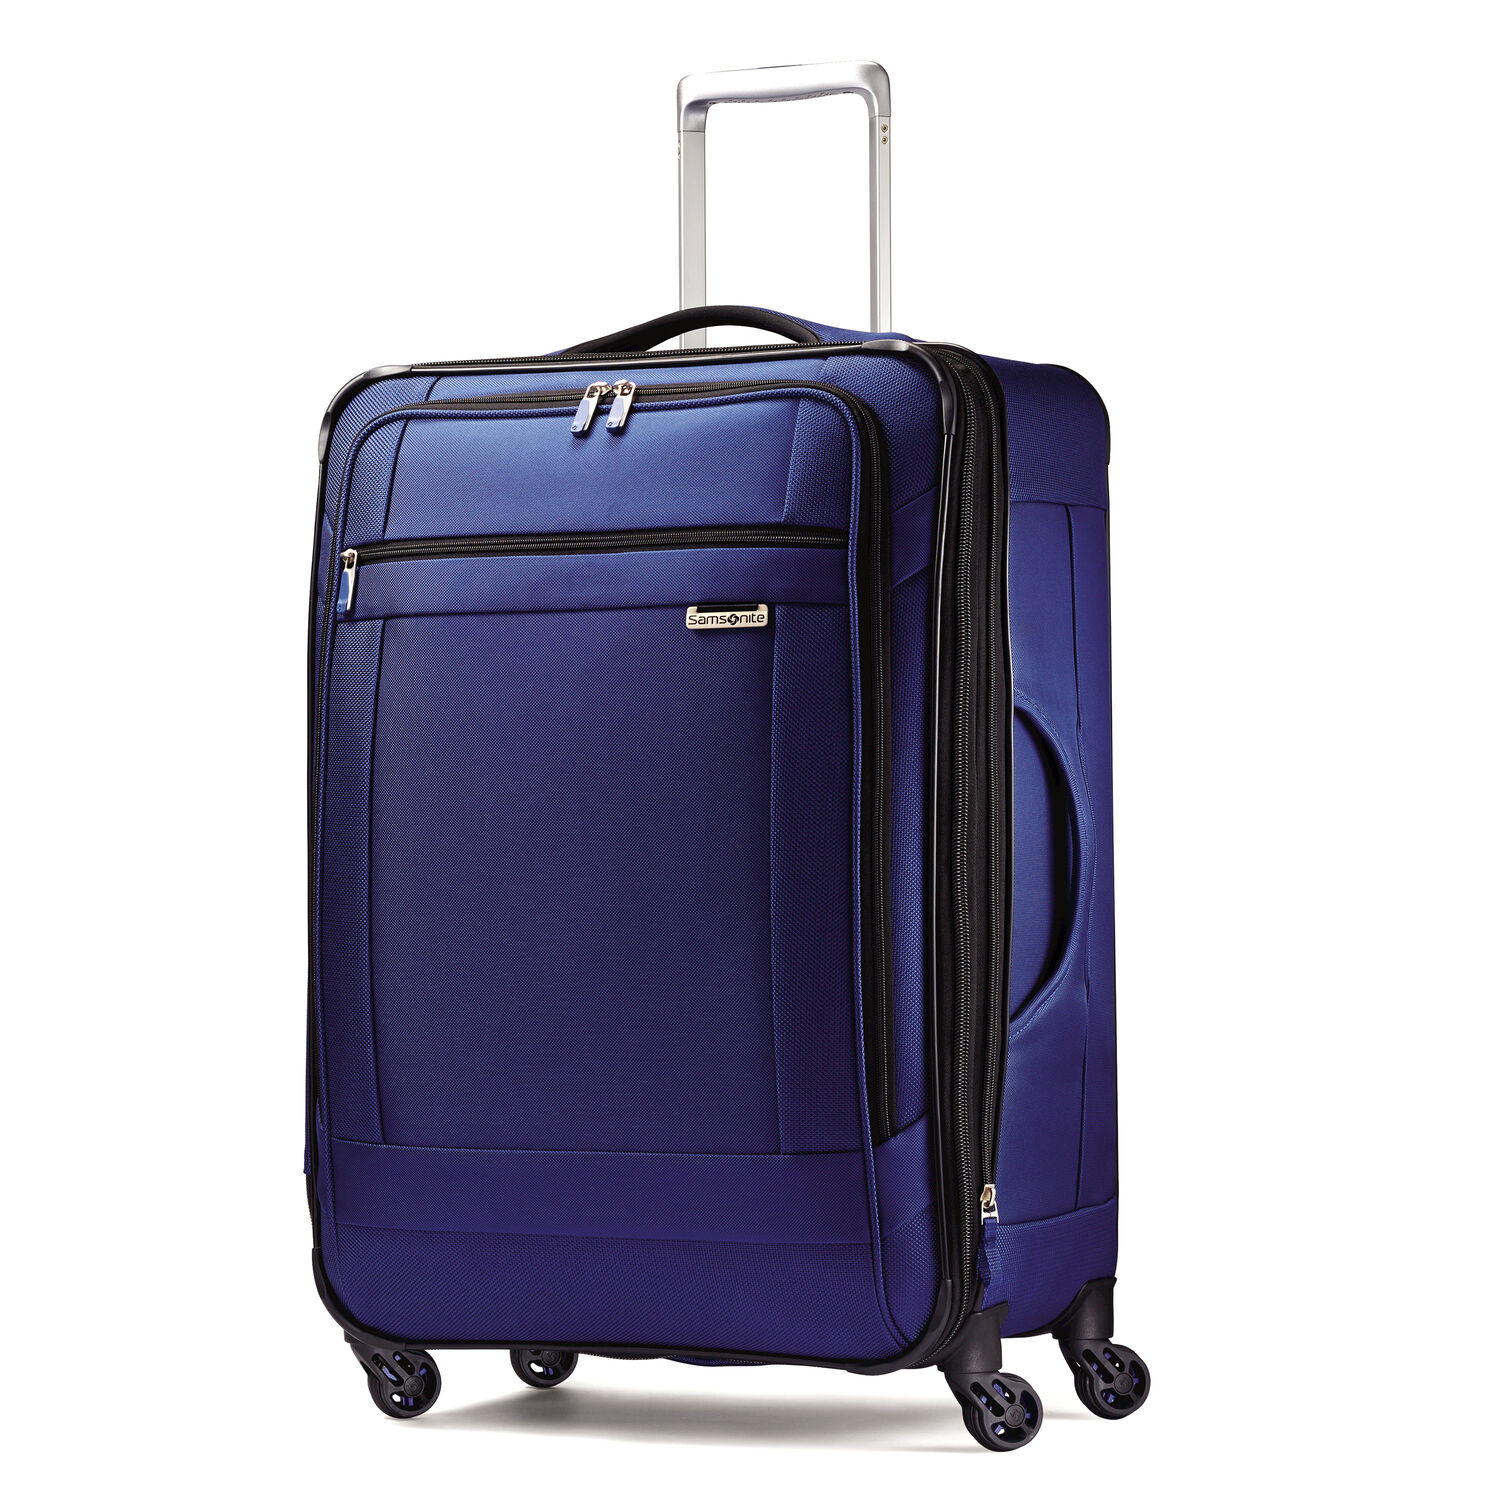 Samsonite solyte 25 quot spinner in the color true blue